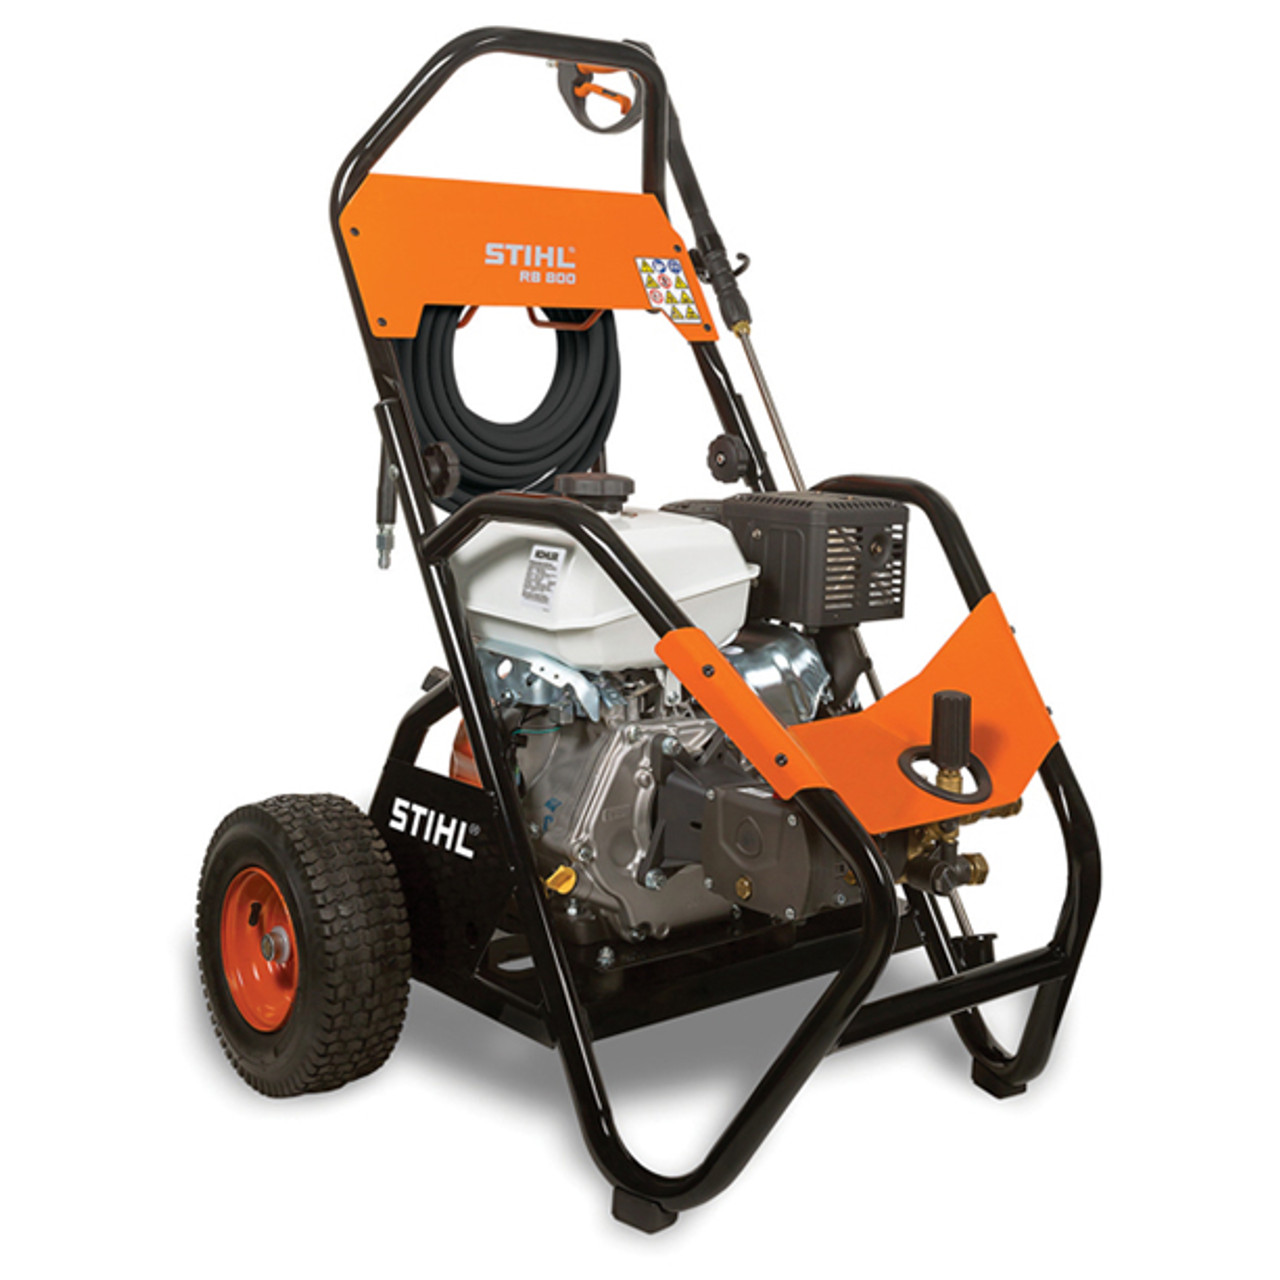 STIHL RB 800 4,200 PSI 4.0 GPM Pressure Washer Image